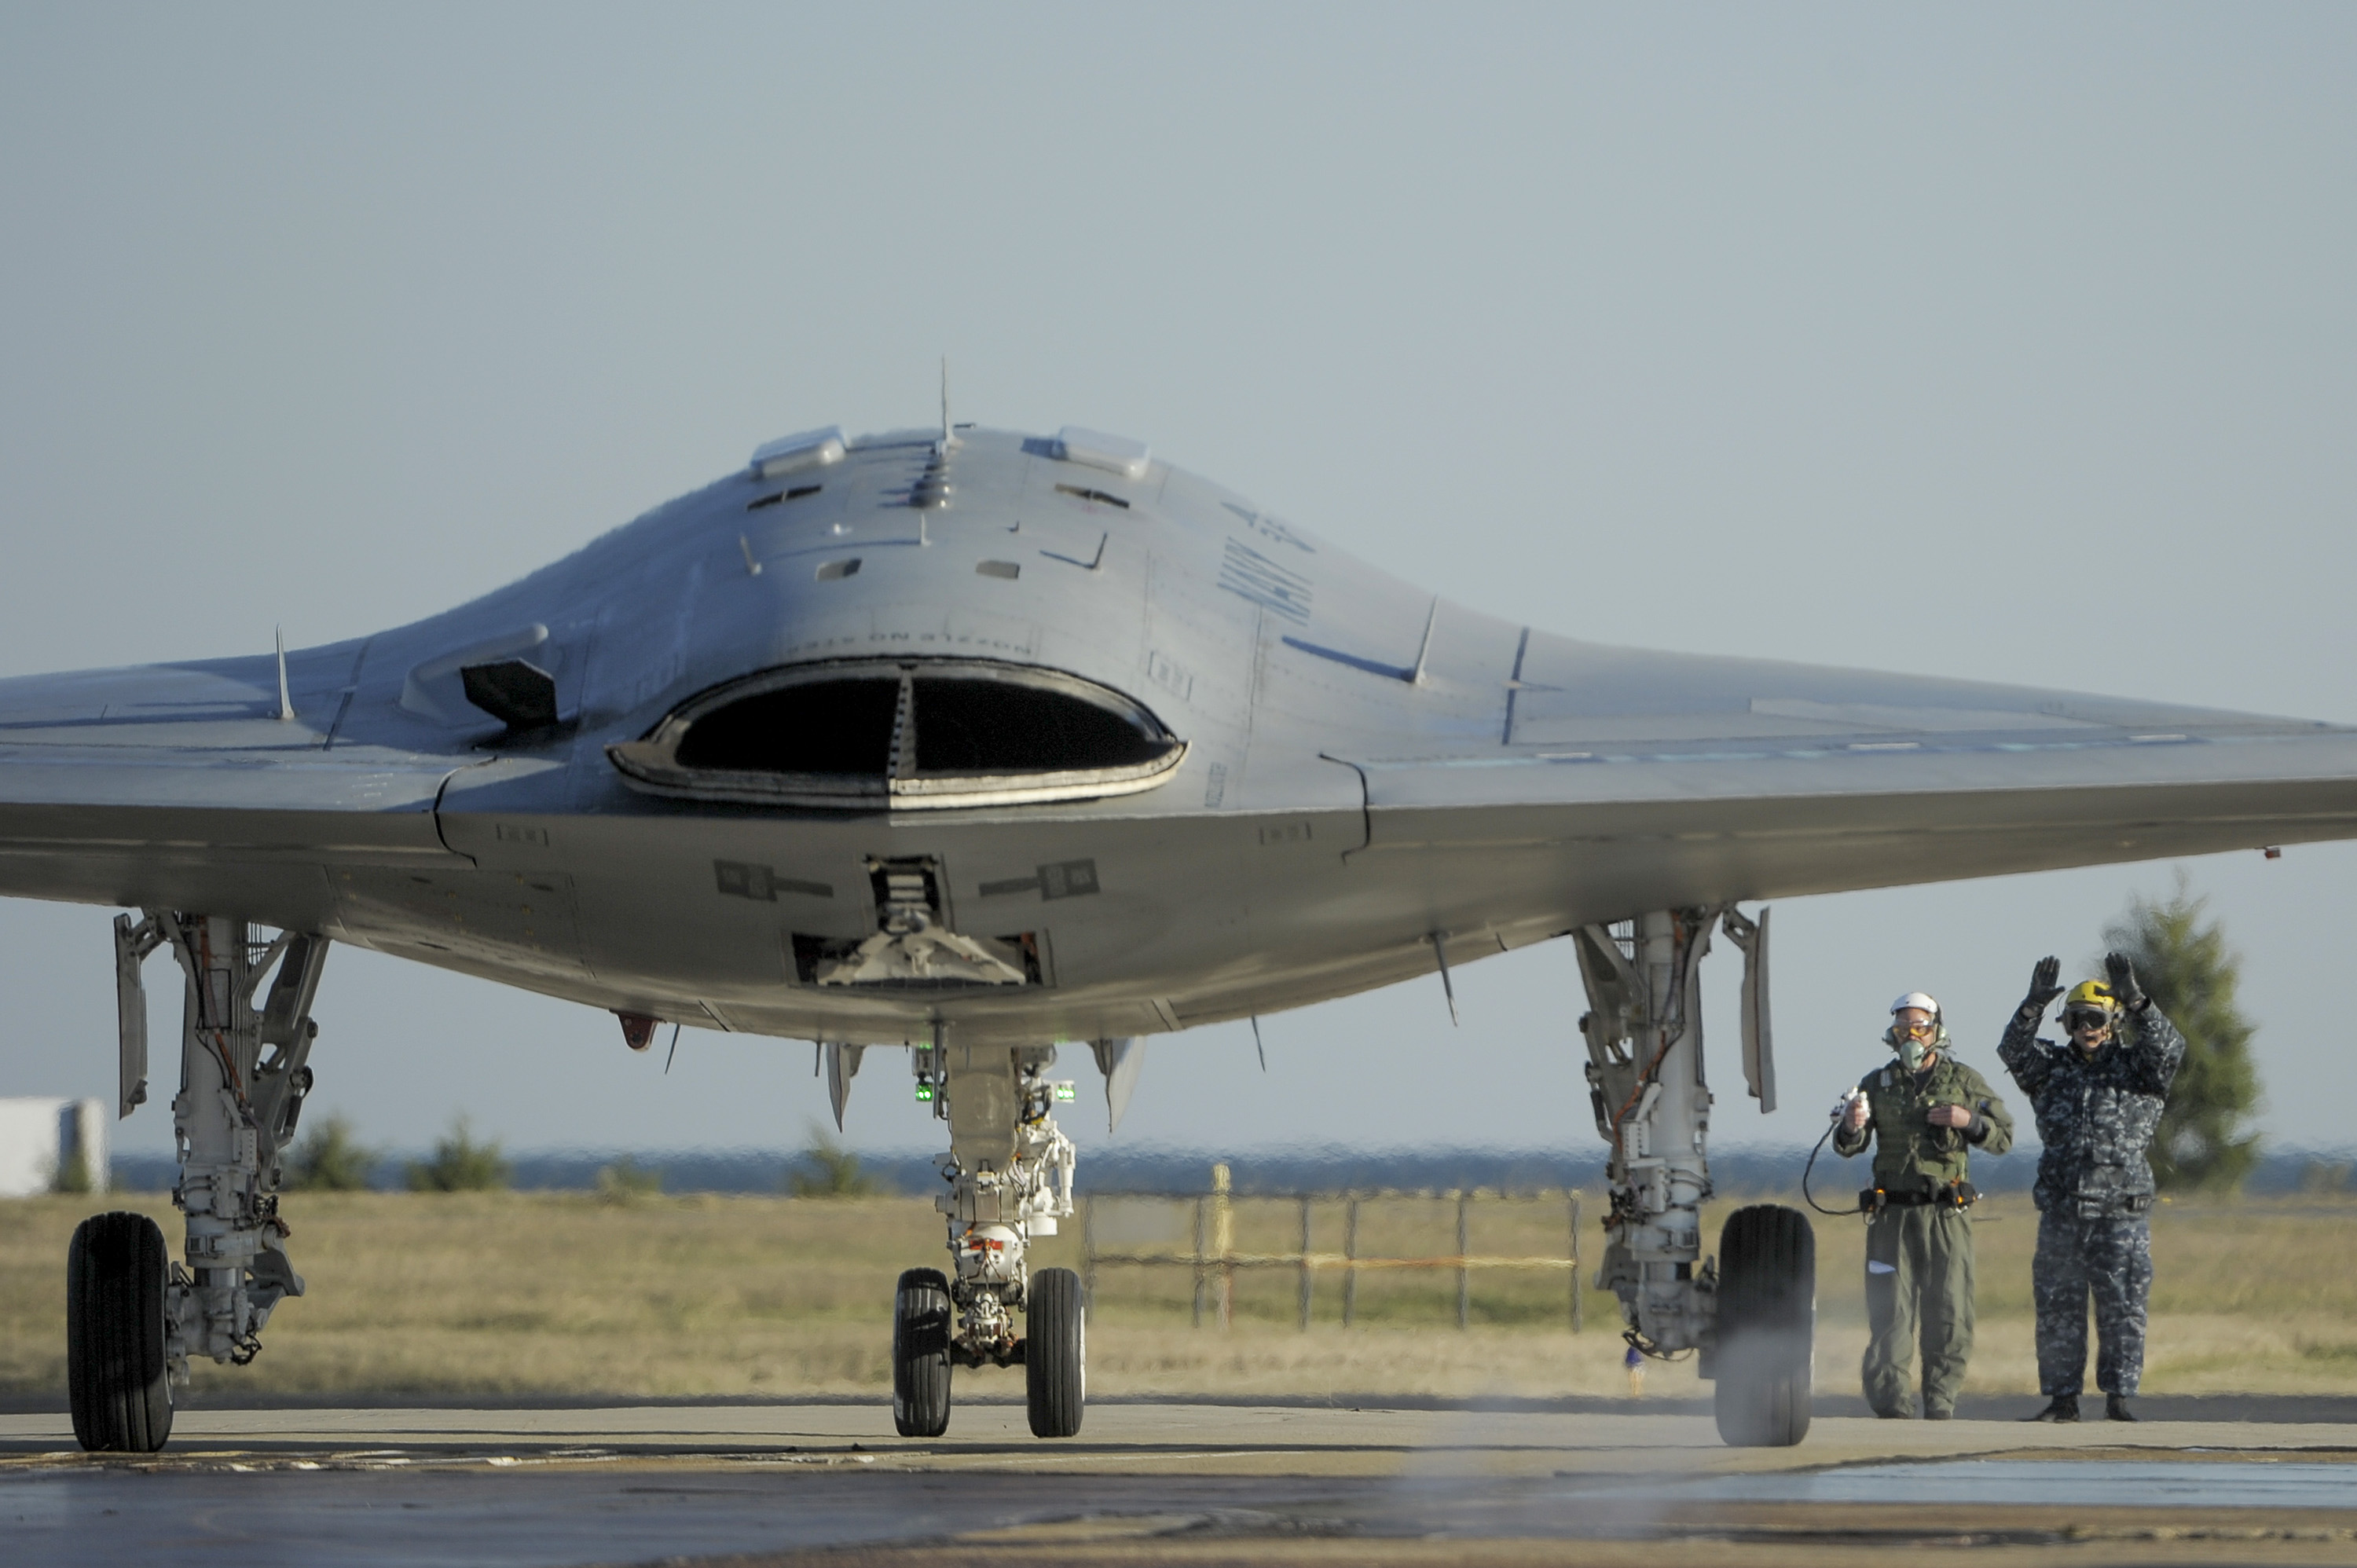 x-47b, fot: http://www.ainonline.com/aviation-news/2012-11-19/navy-northrop-grumman-test-x-47b-handheld-controller